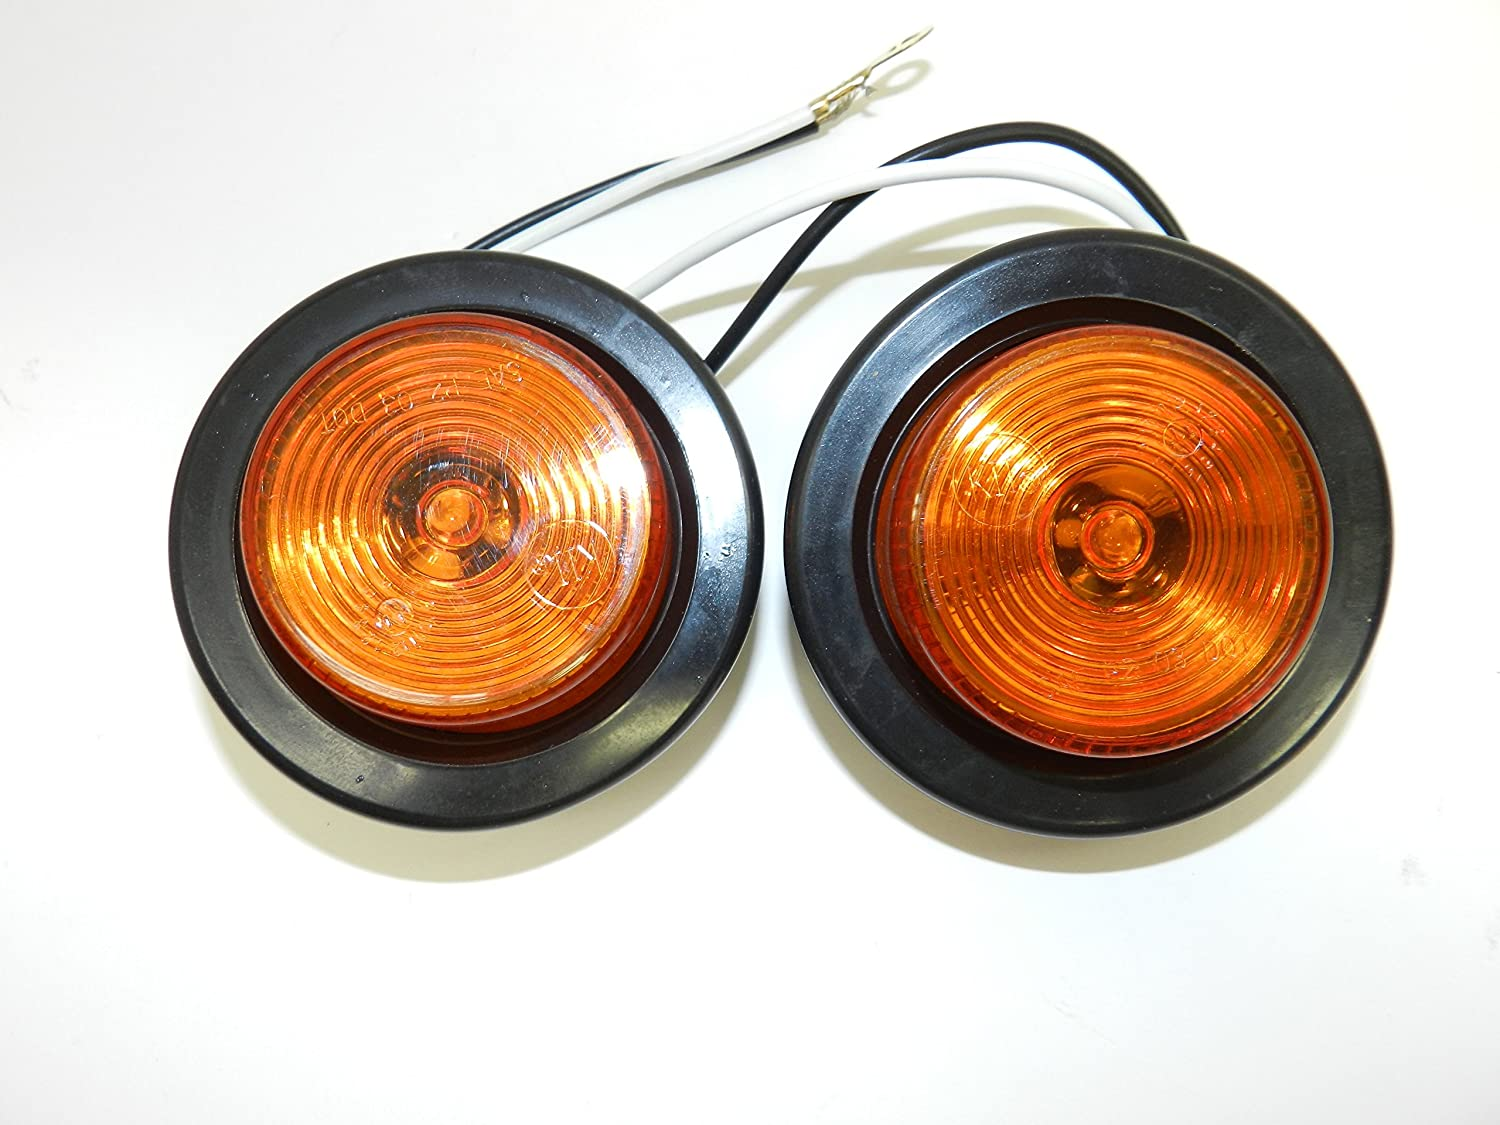 RVs Trailers Pair of LED 2.5 Round Amber Clearance//Side Marker Lights with Grommets and 2 Pole Wire Connectors for Trucks